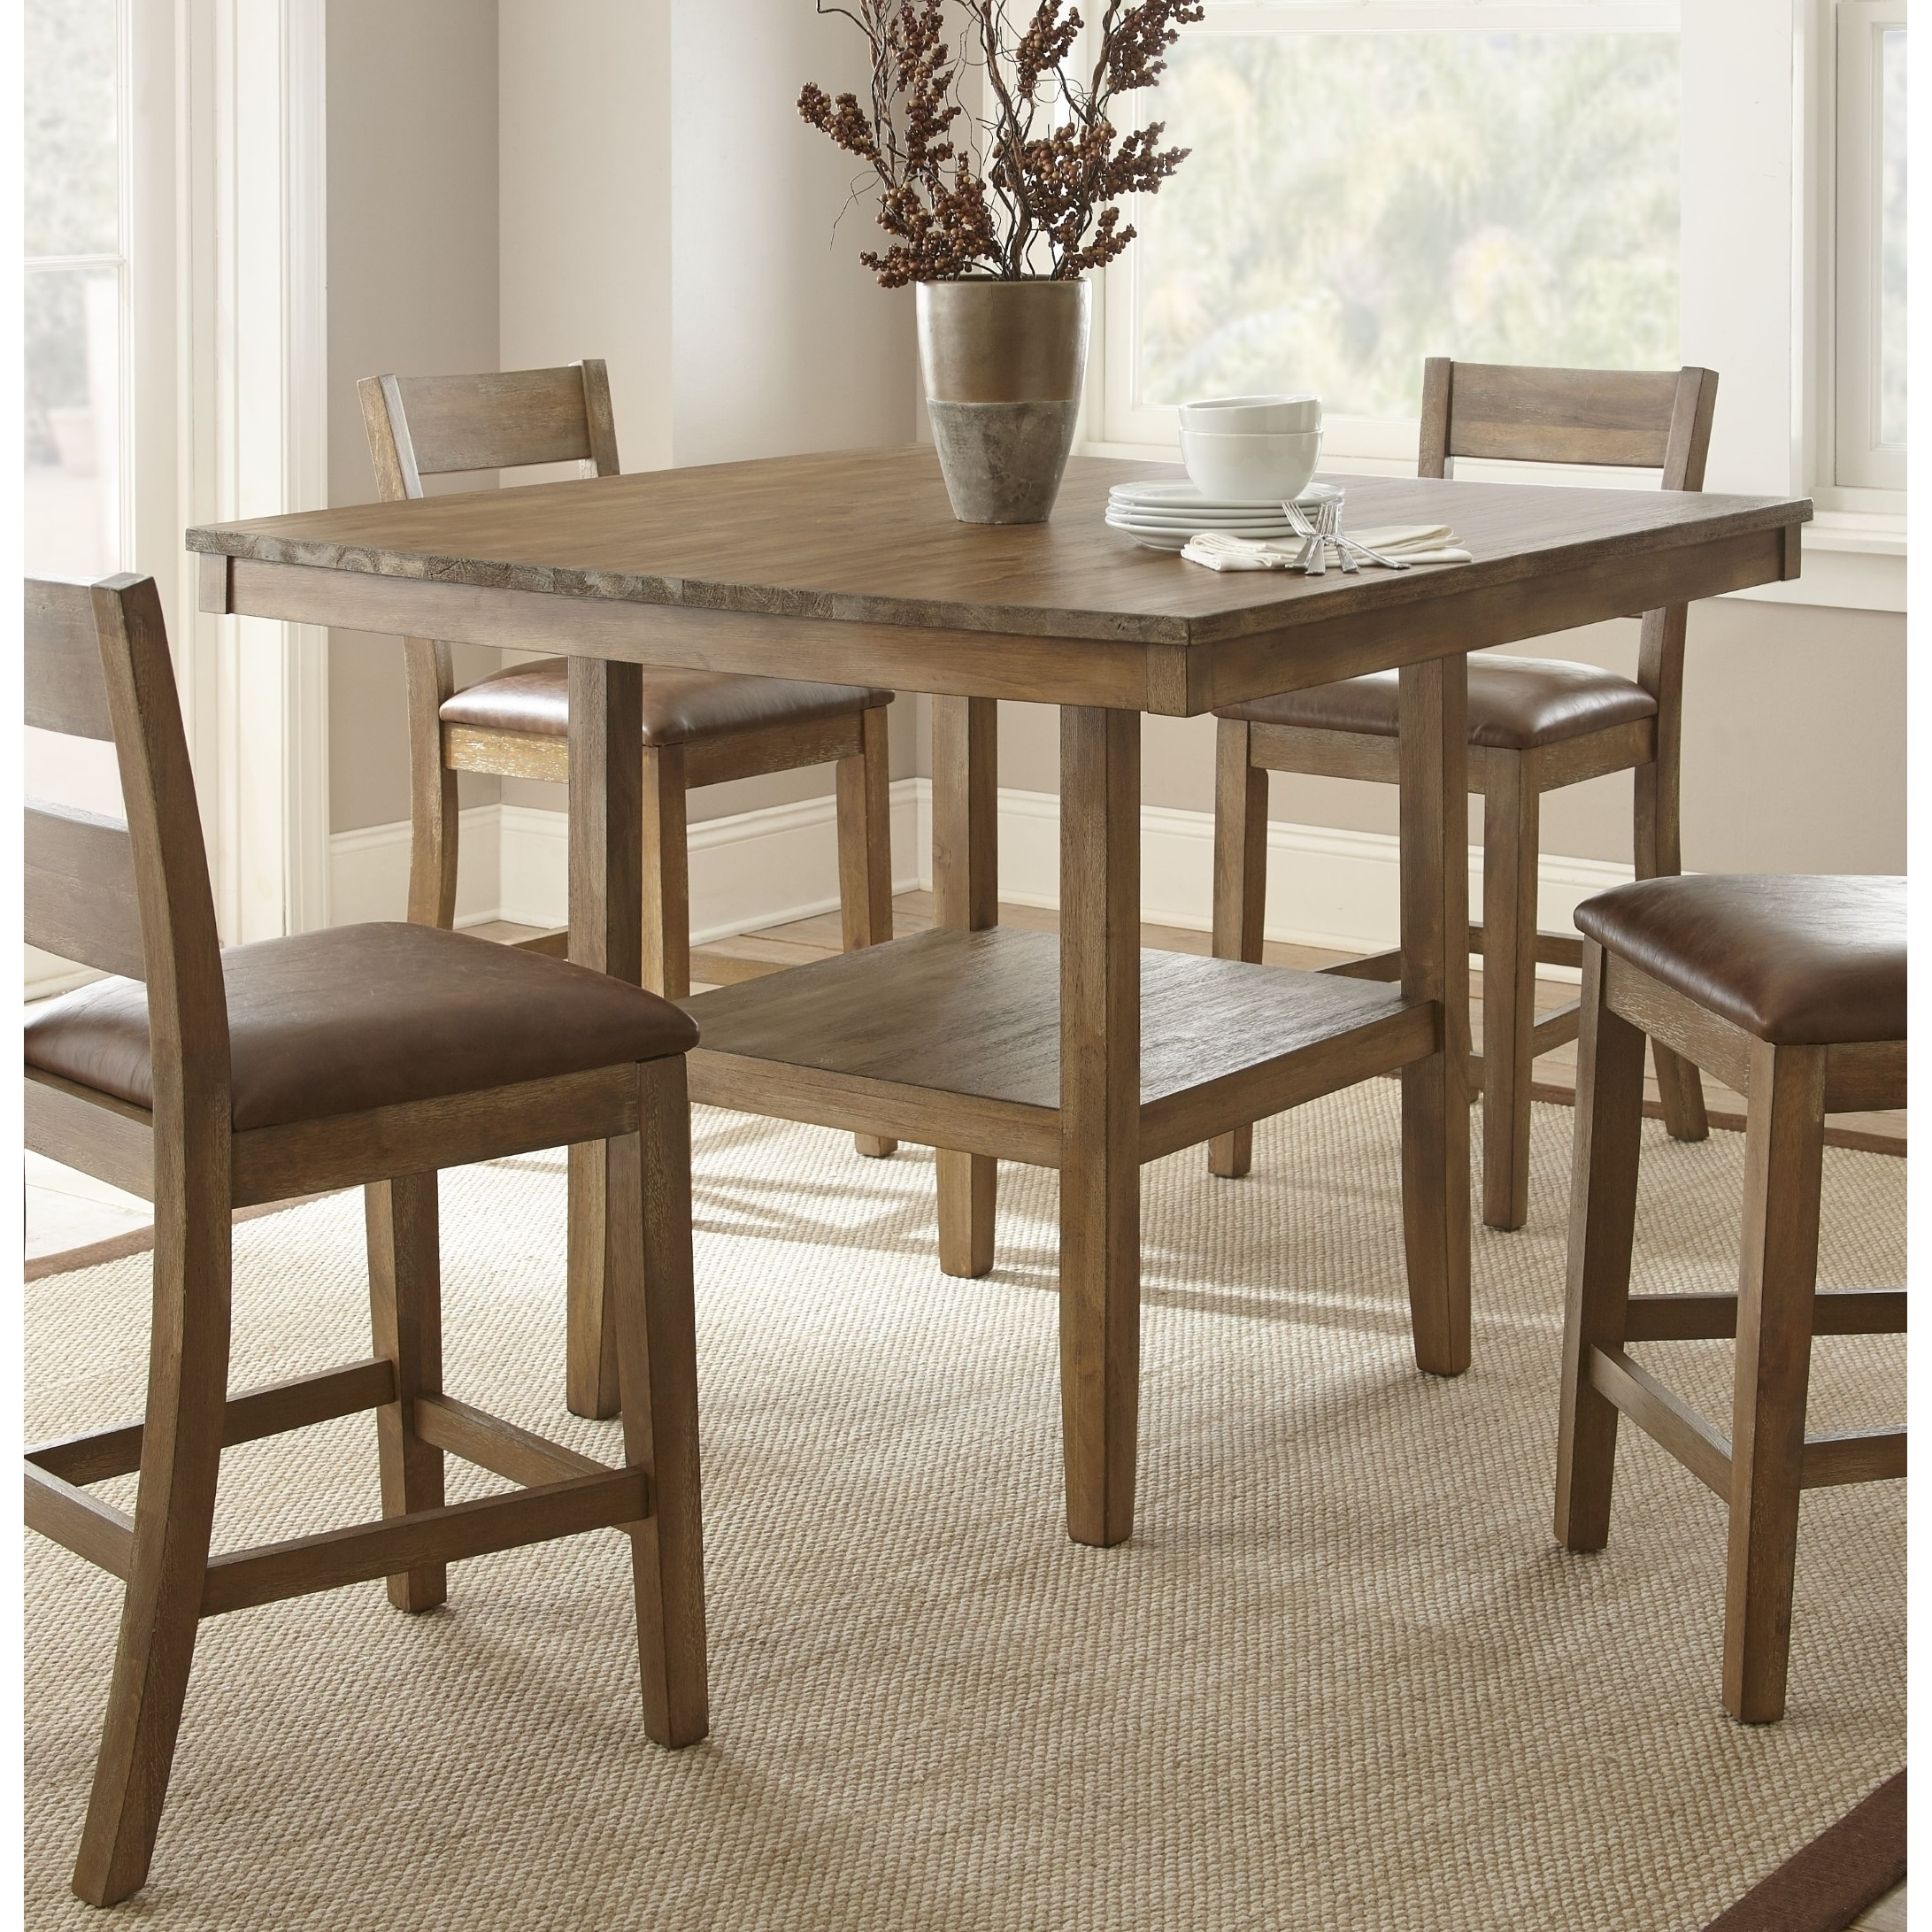 Chaffee 48-inch Square Counter-height Dining Table by Greyson Living